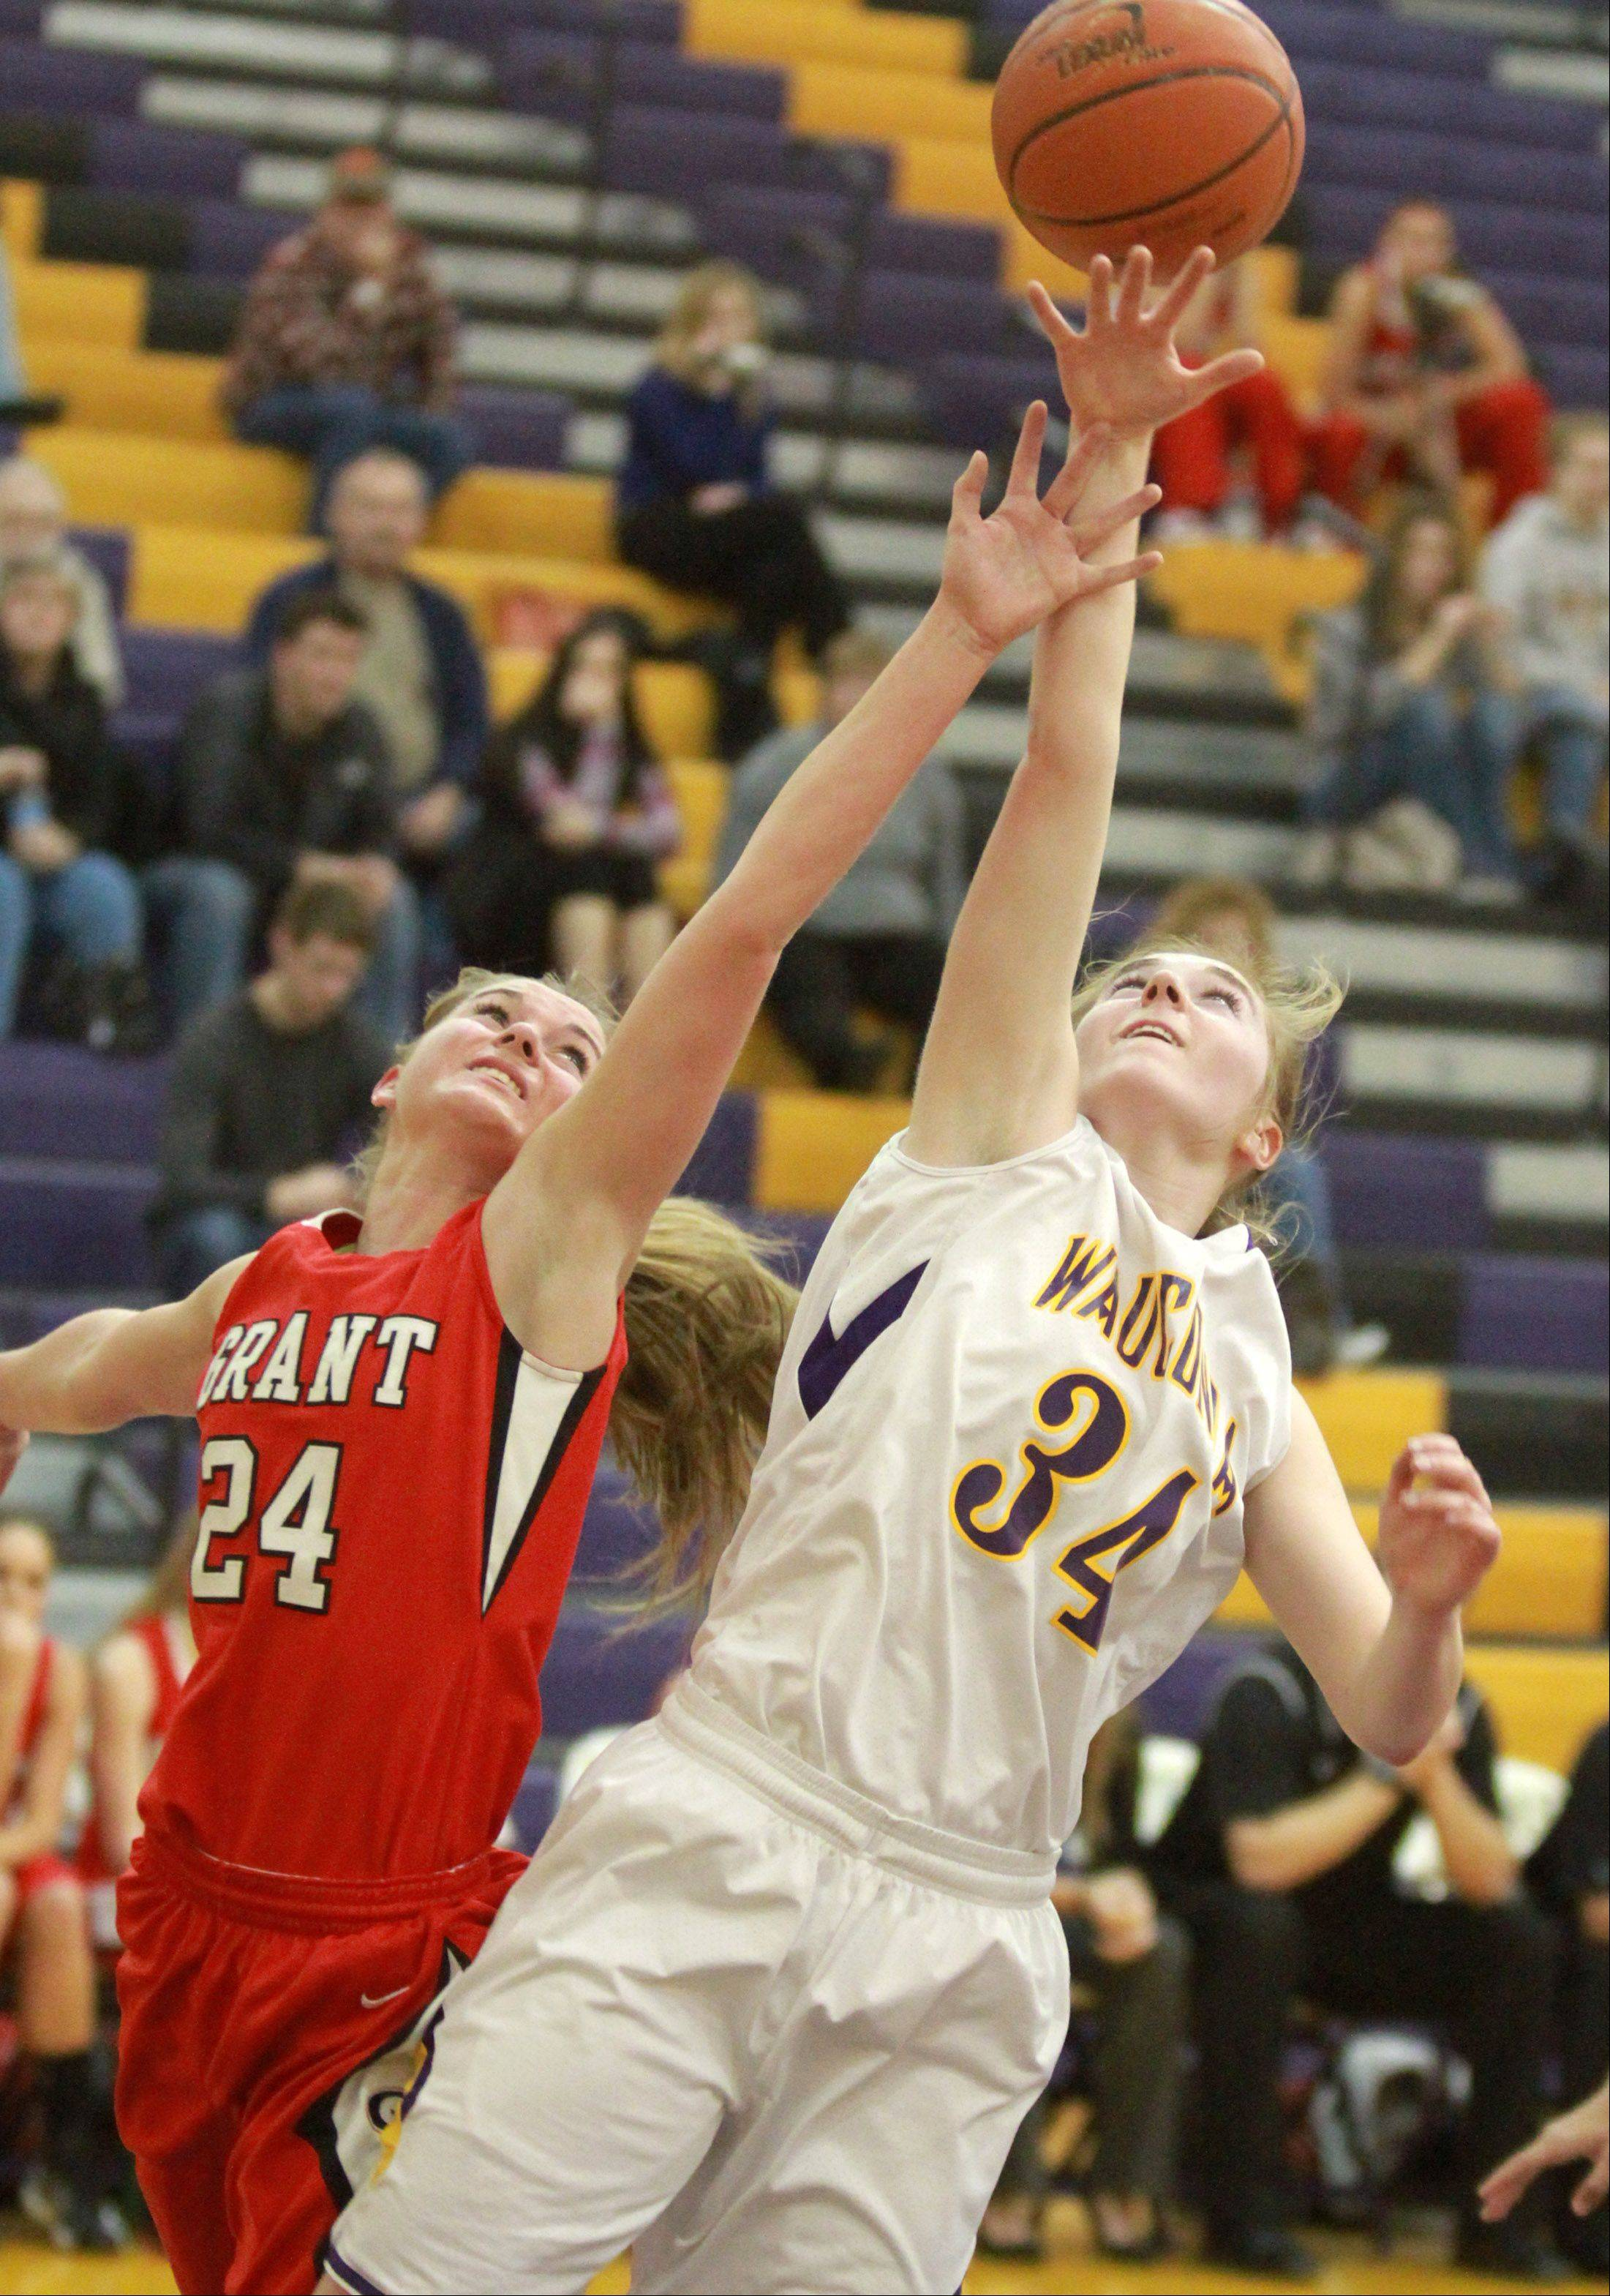 Wauconda's Jessie Wood fights for an offensive rebound against Grant defender Kaylie Kanzler at Wauconda on Saturday.